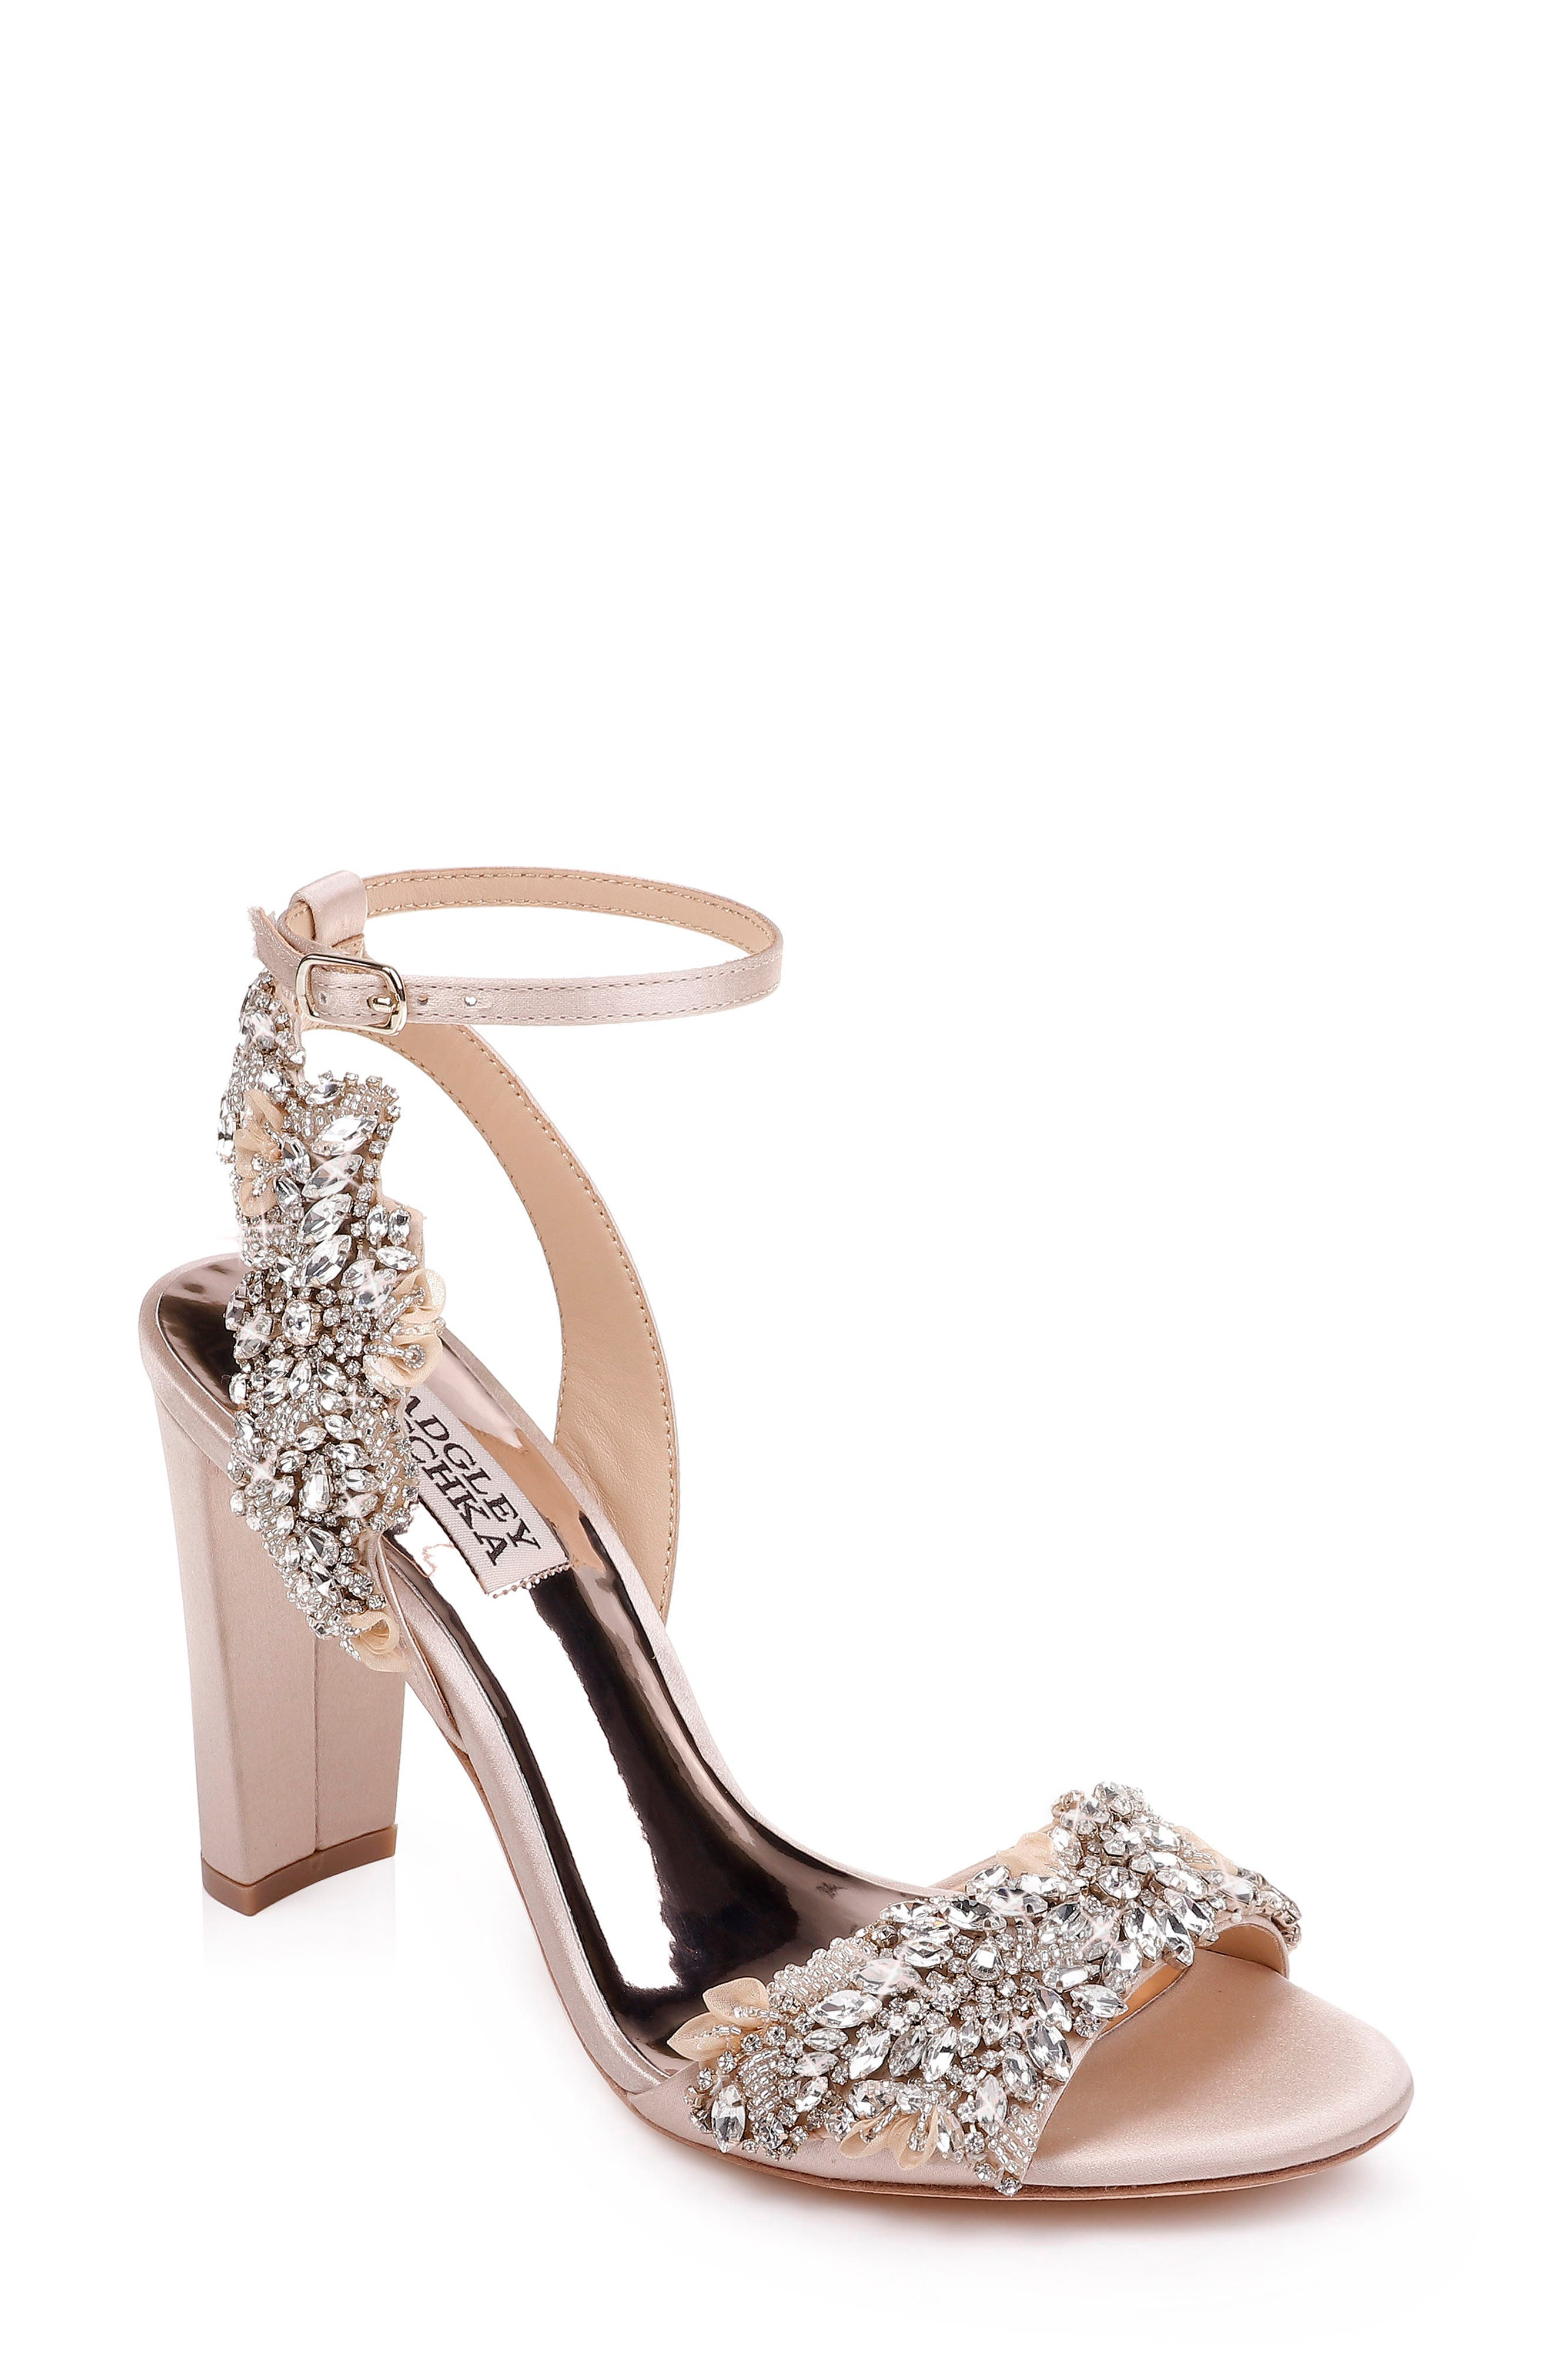 Badgley Mischka Libby Ankle Strap Sandal,                             Main thumbnail 1, color,                             NUDE SATIN